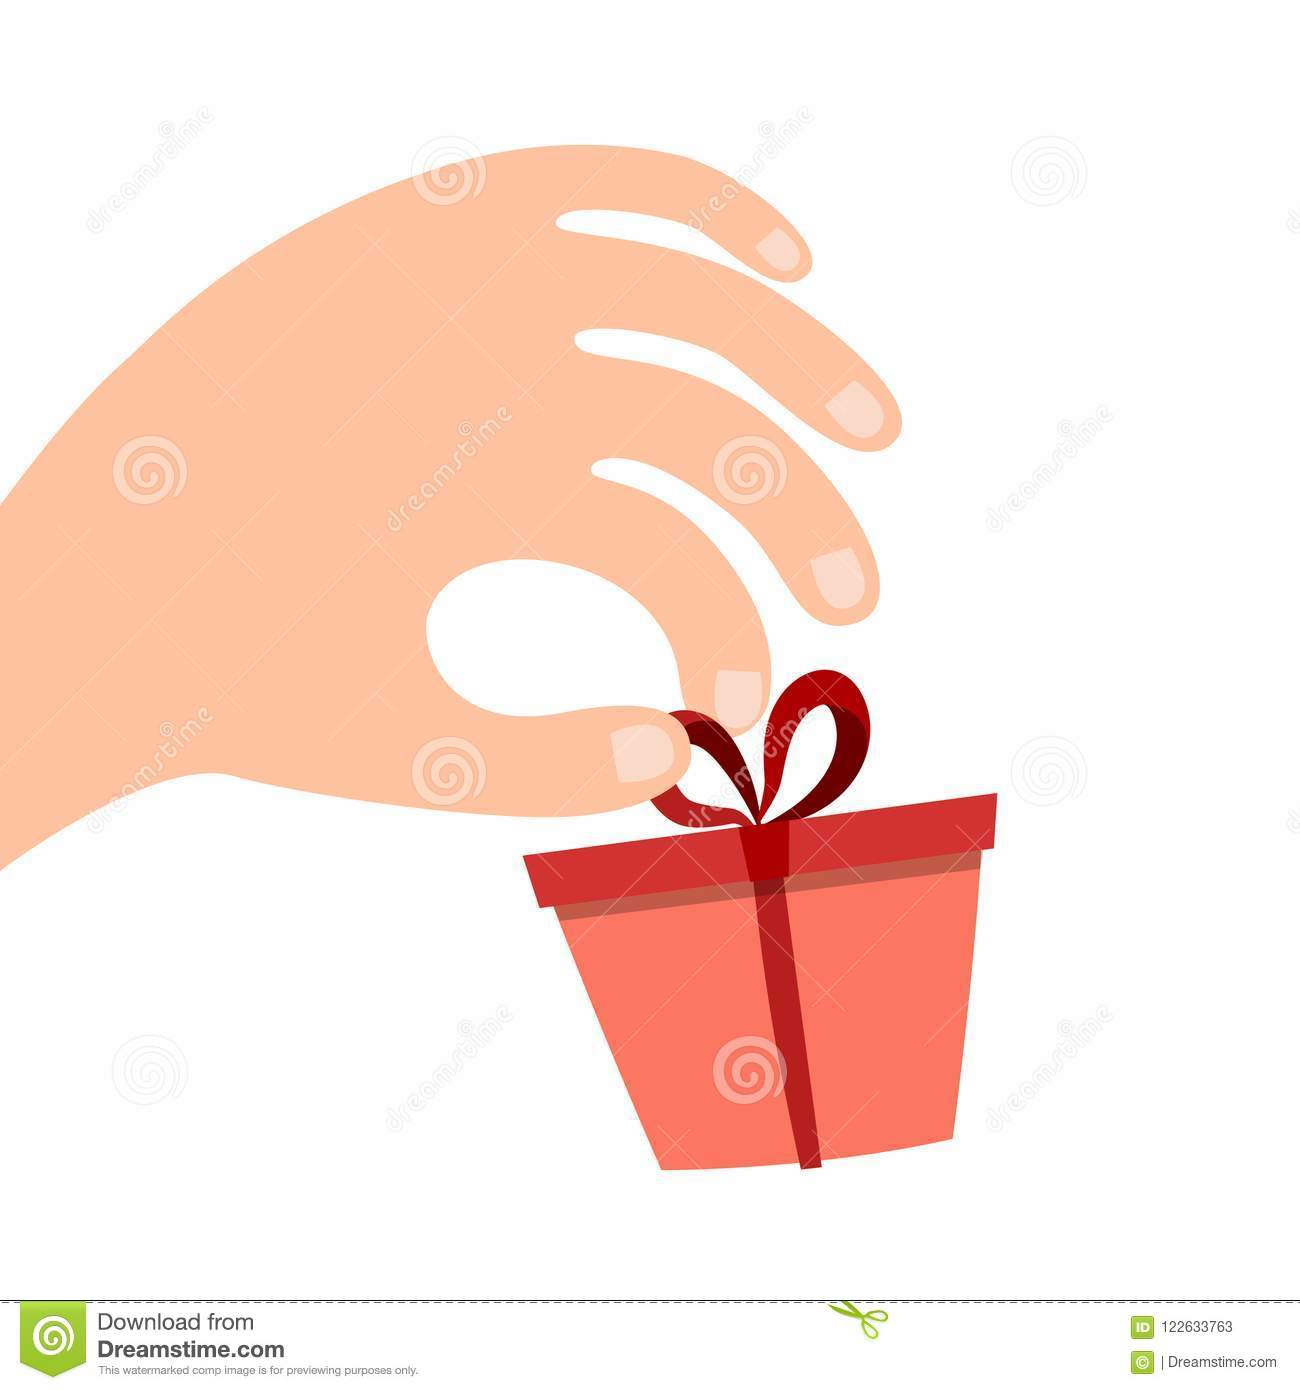 Gift Box With A Bow On His Hand Businessman Manager Or Seller Proposes To